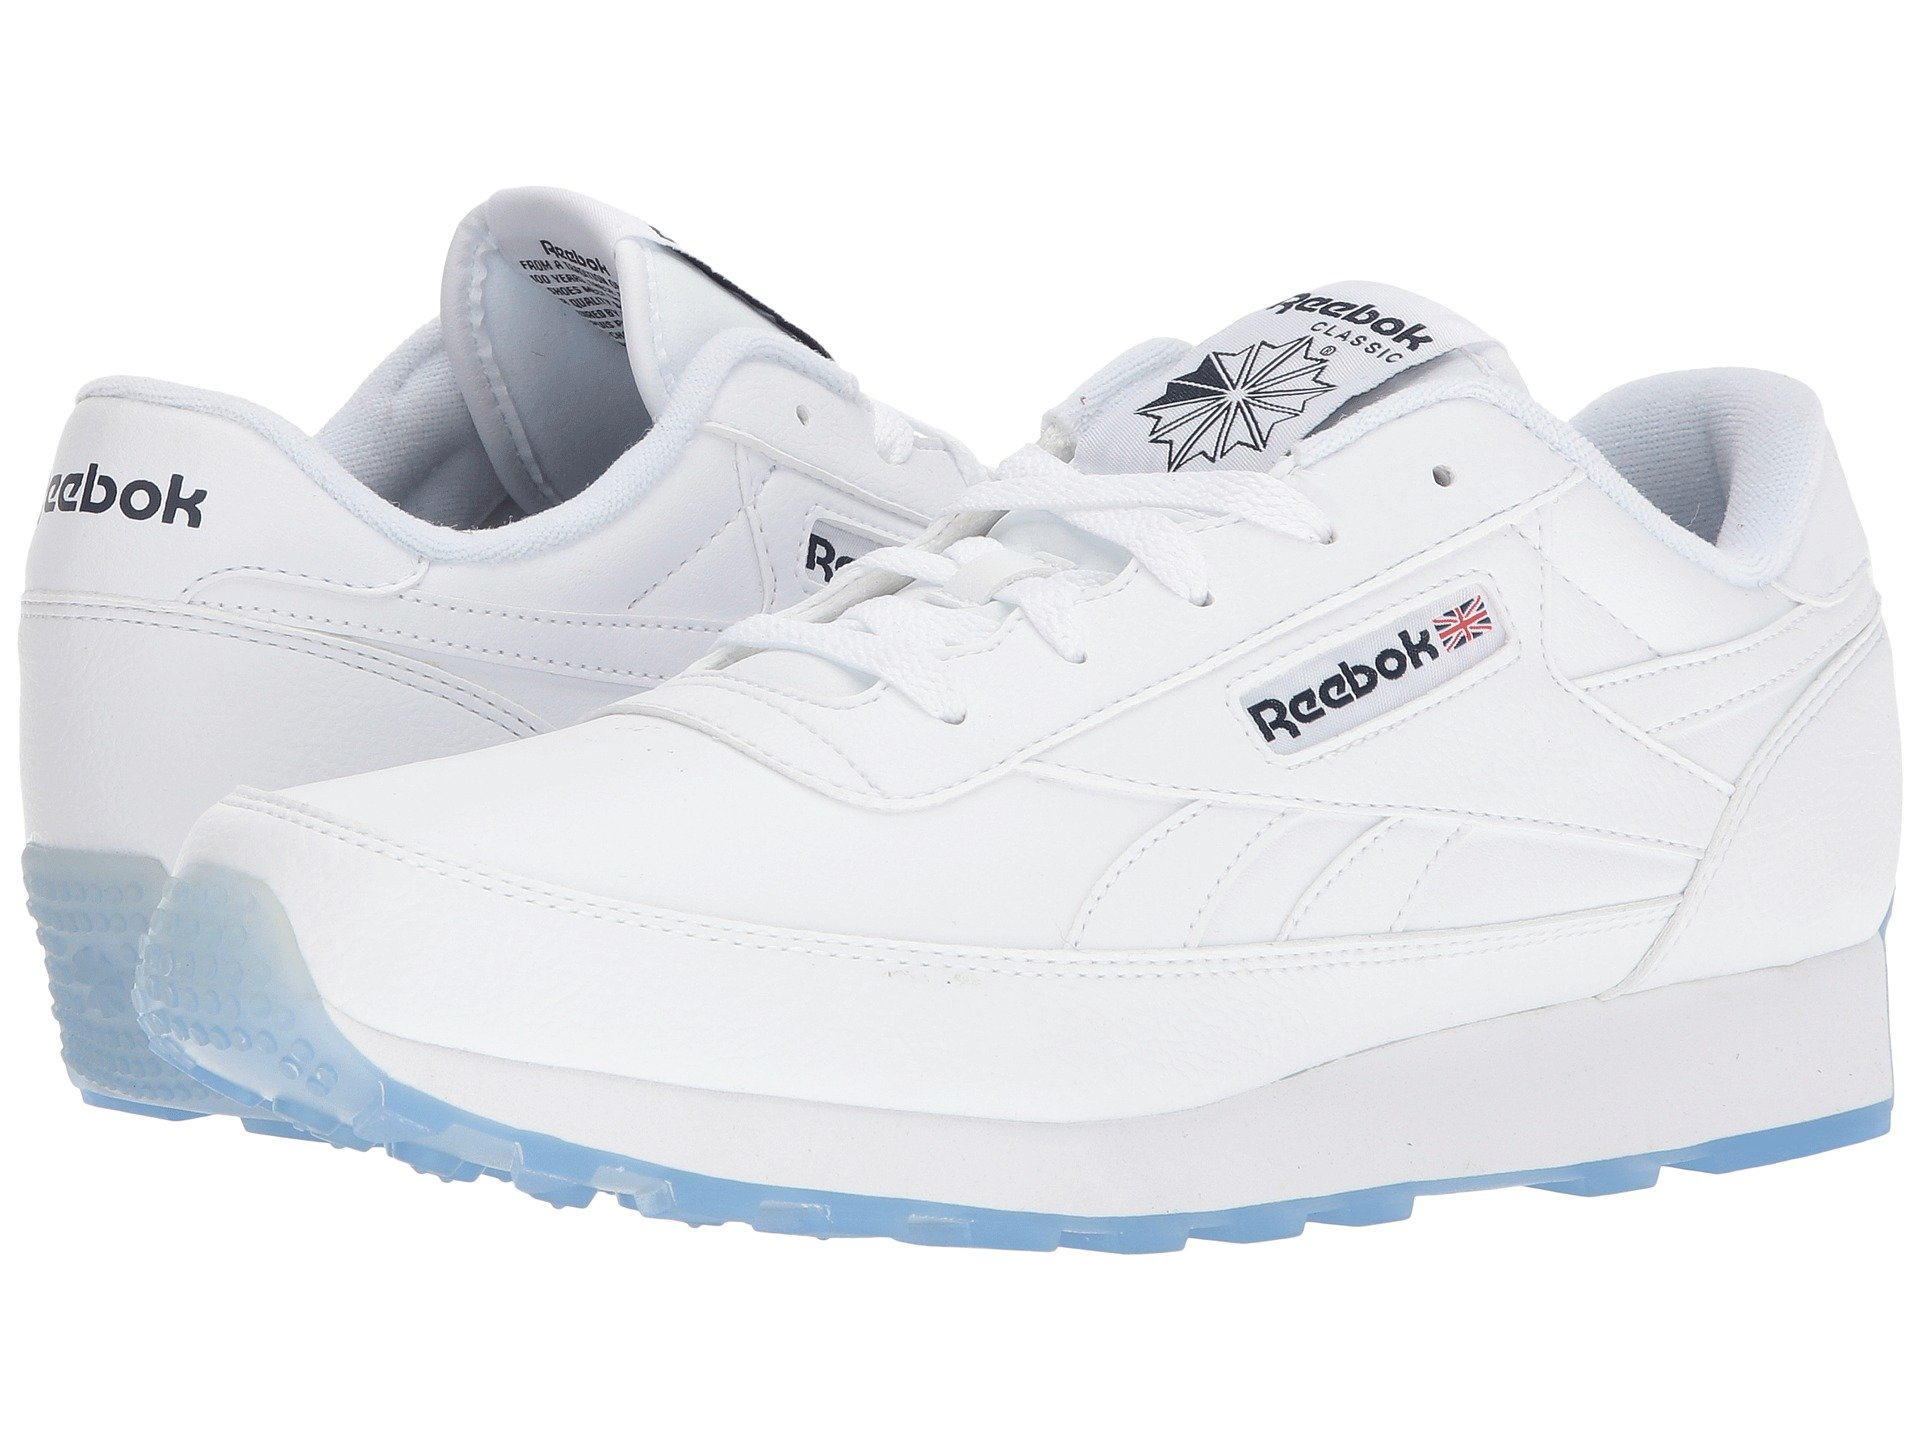 7649899d495 Reebok Classic Renaissance Pop at 6pm